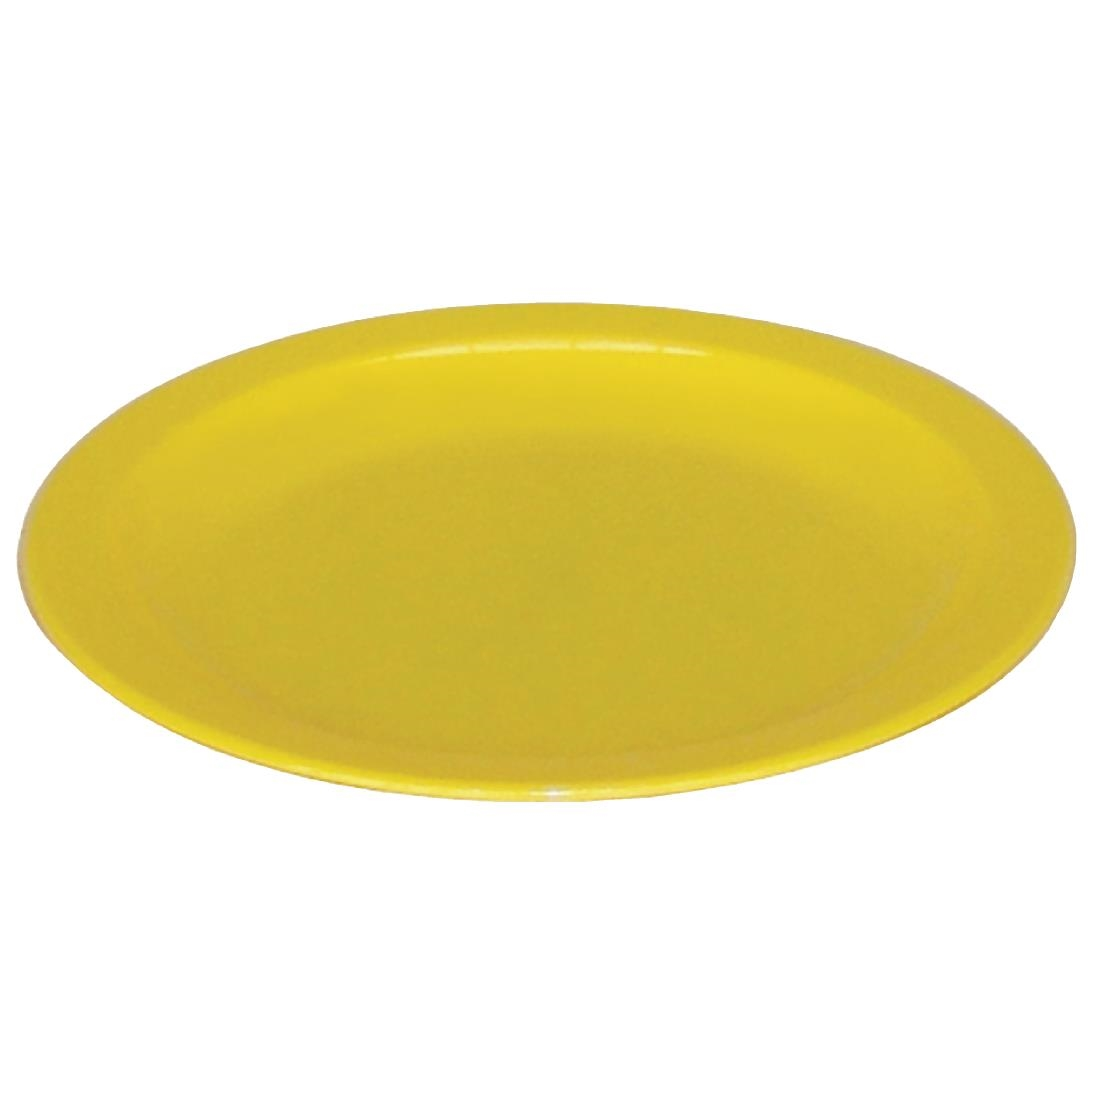 Plate - Yellow